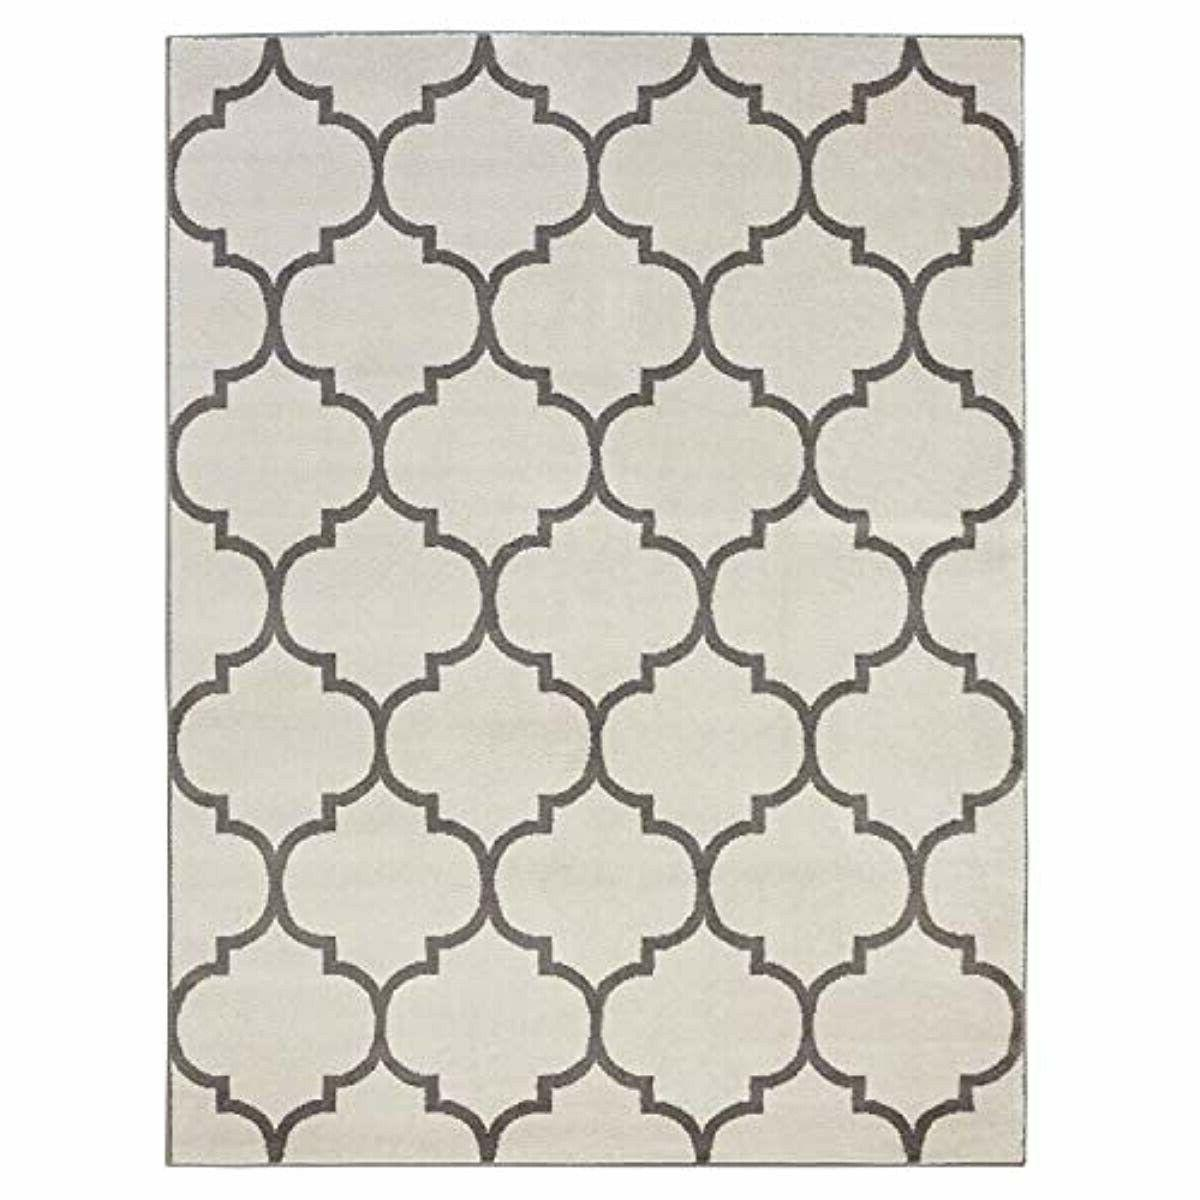 king collection moroccan trellis design area rug